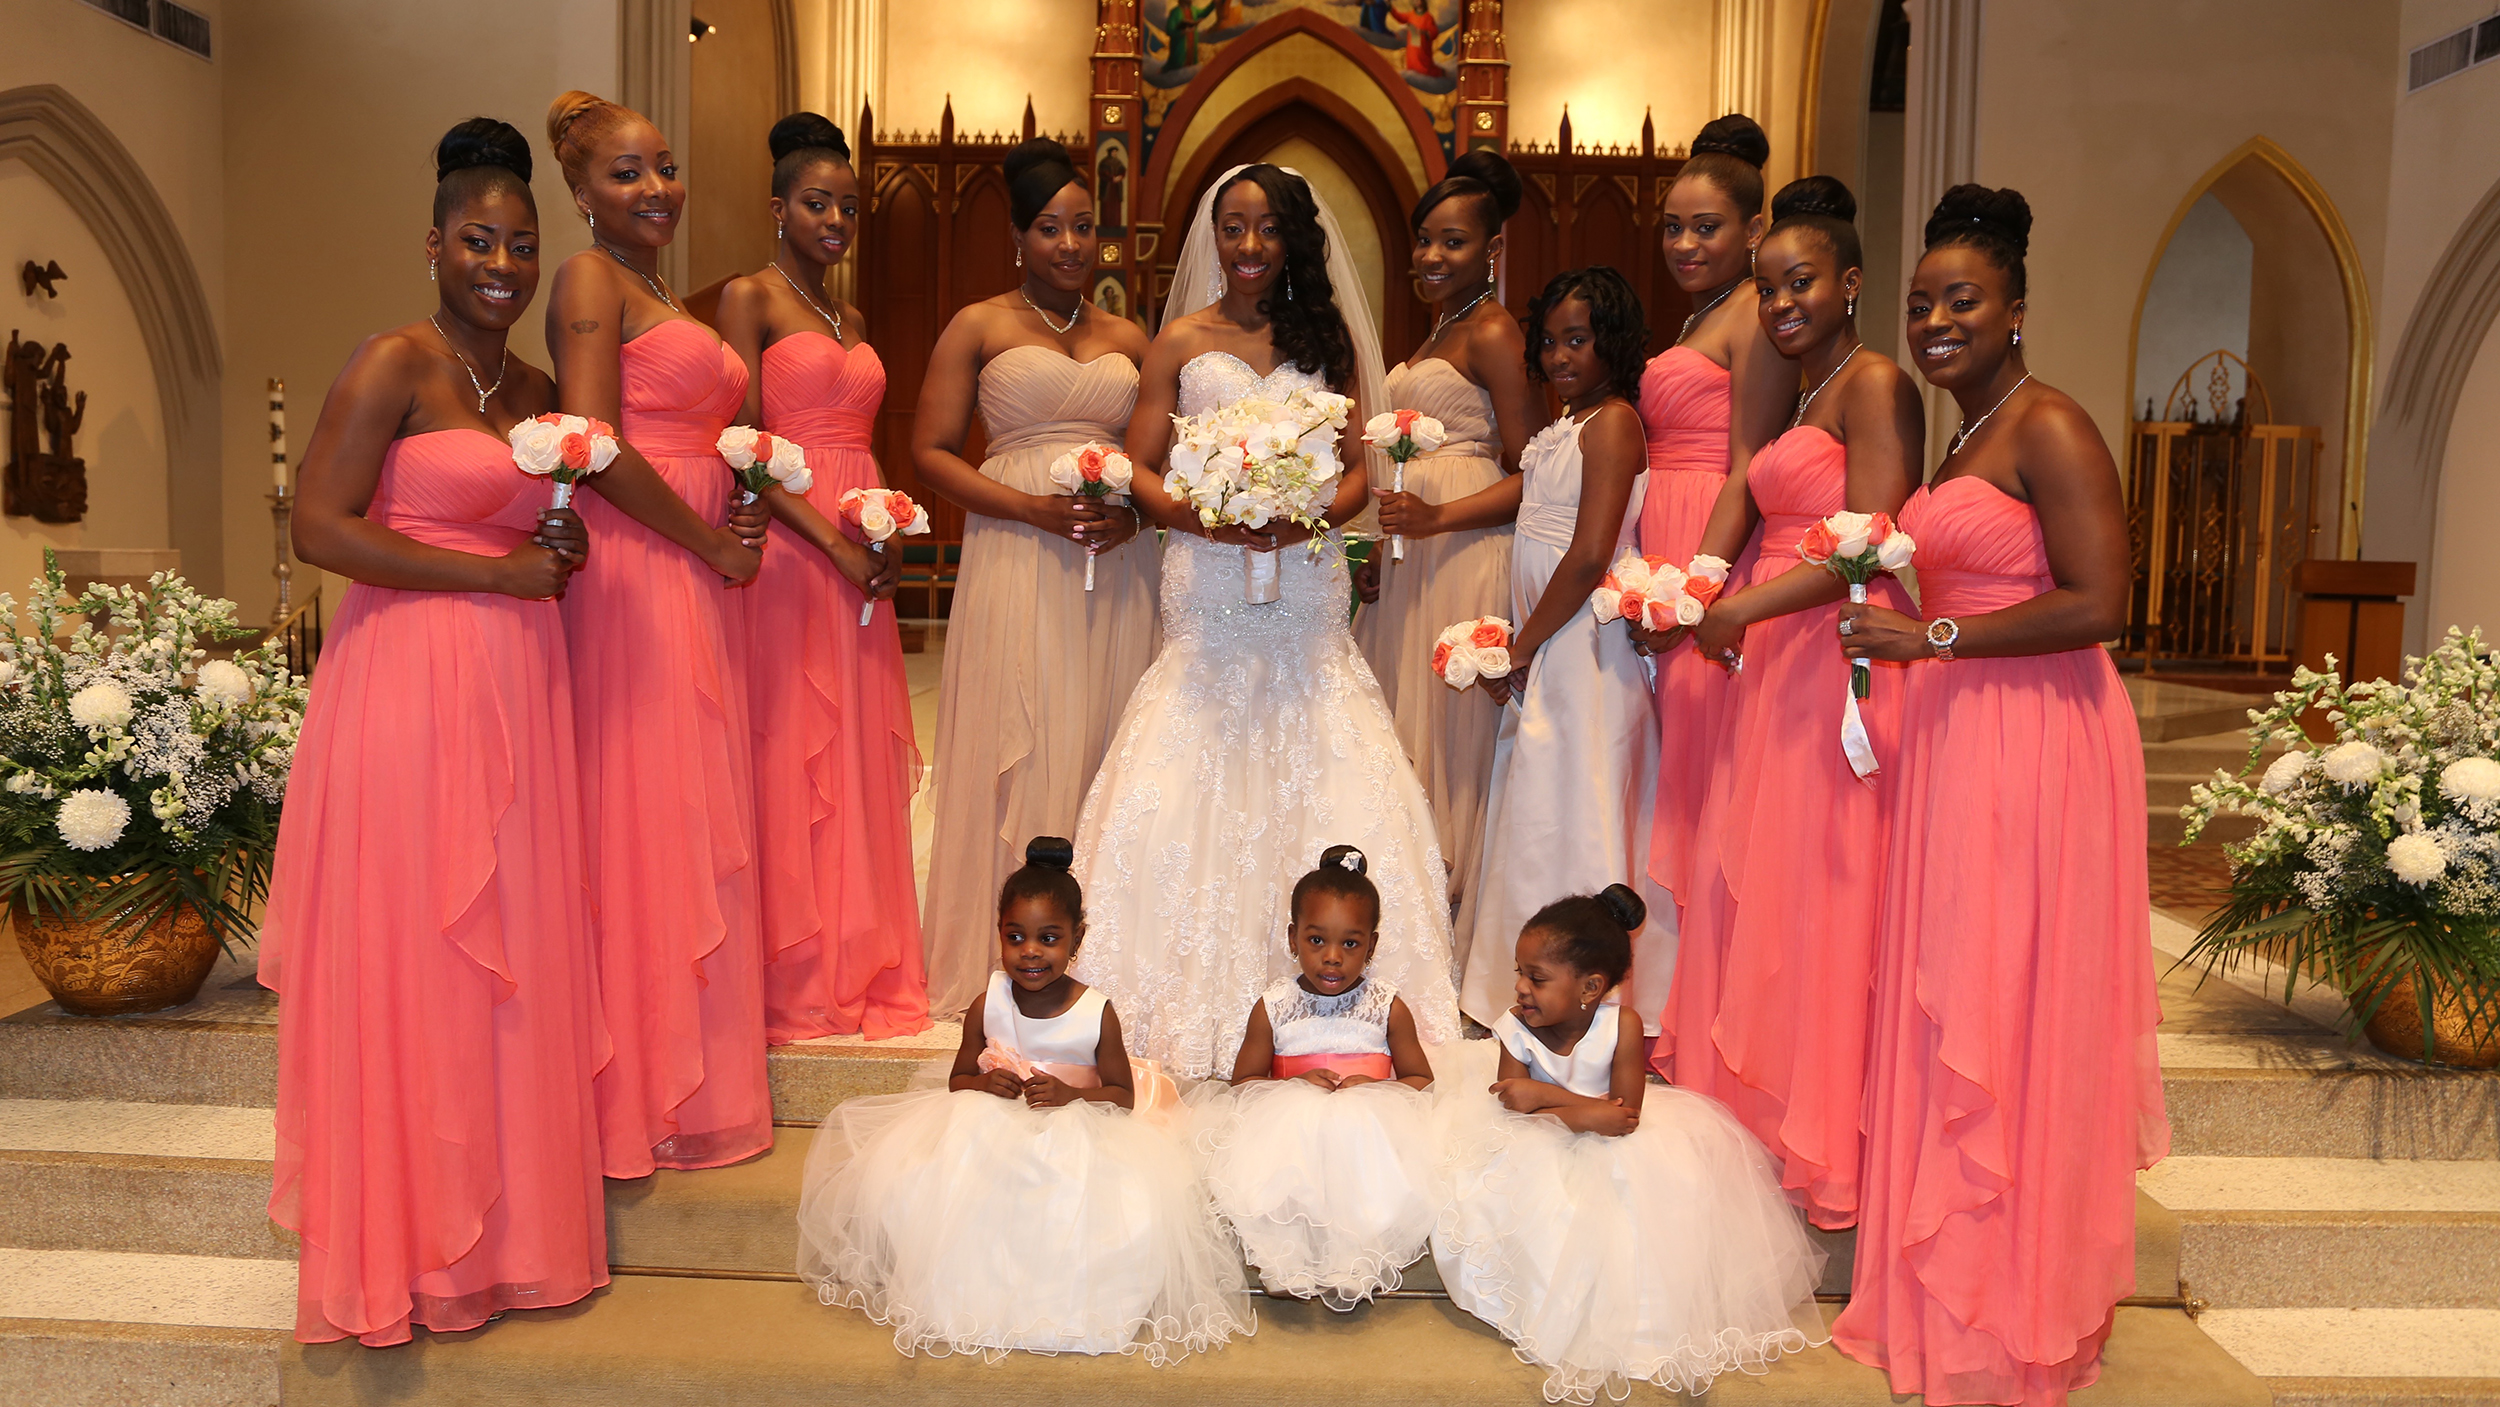 Bridesmaids and bridal party tips what i wish i knew for Ideas for wedding pictures